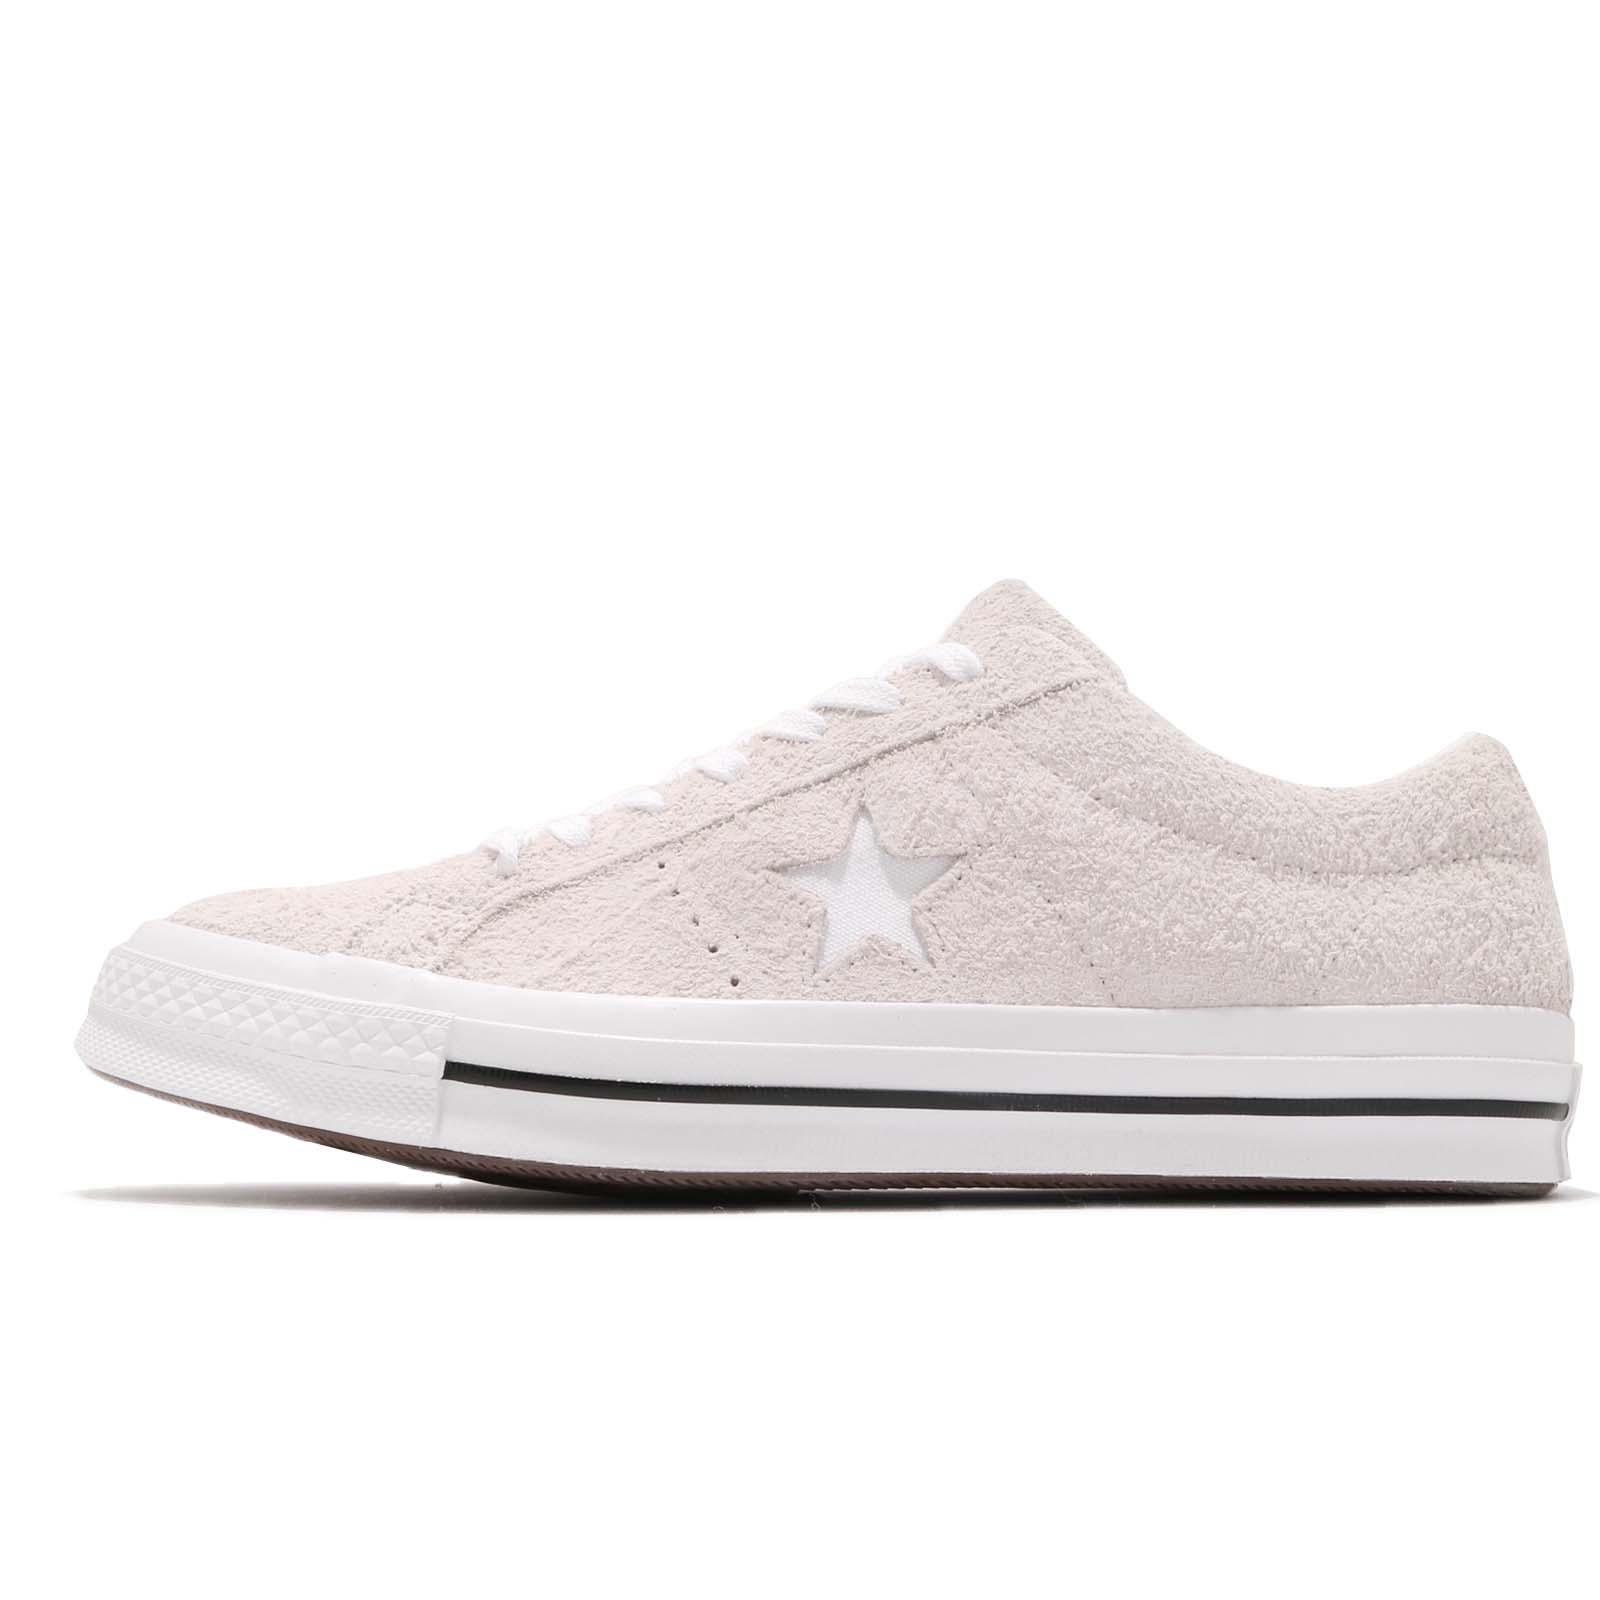 Converse One Star OX Grey White Suede Men Women Casual Shoes Sneakers  161577C af2cd8502cf